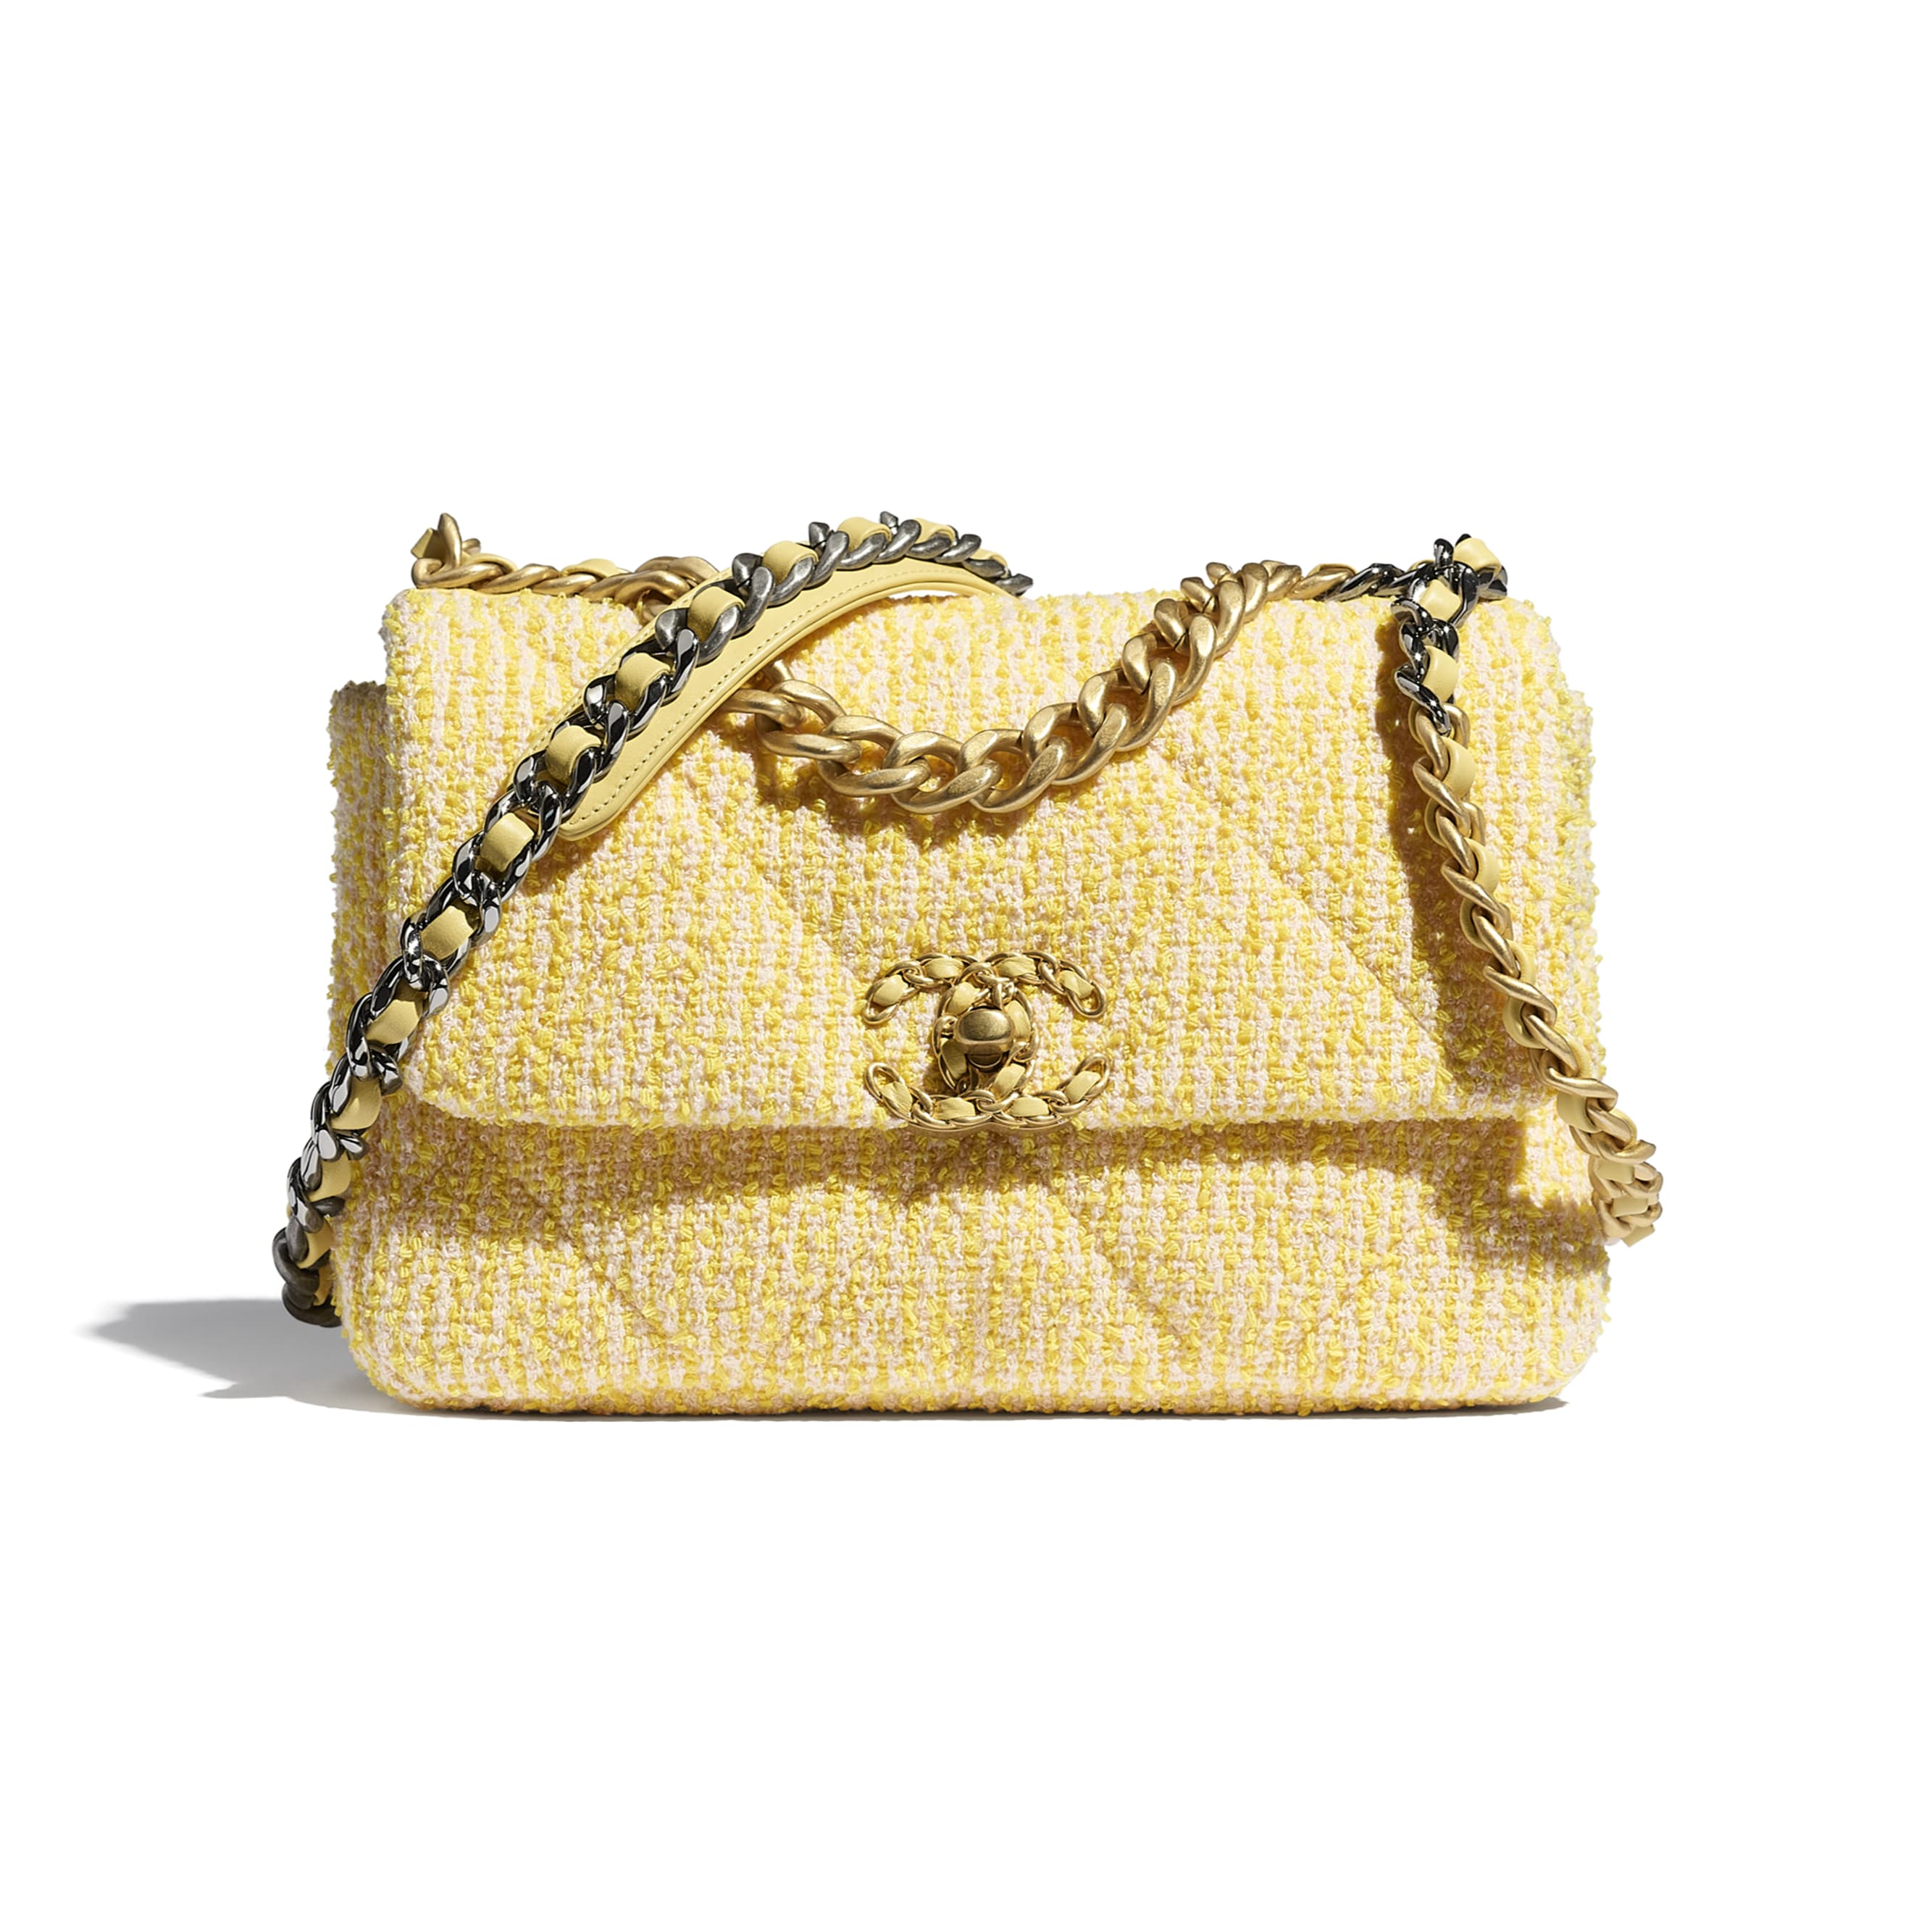 CHANEL 19 Flap Bag - Yellow & Pink - Tweed, Gold-Tone, Silver-Tone & Ruthenium-Finish Metal - CHANEL - Default view - see standard sized version